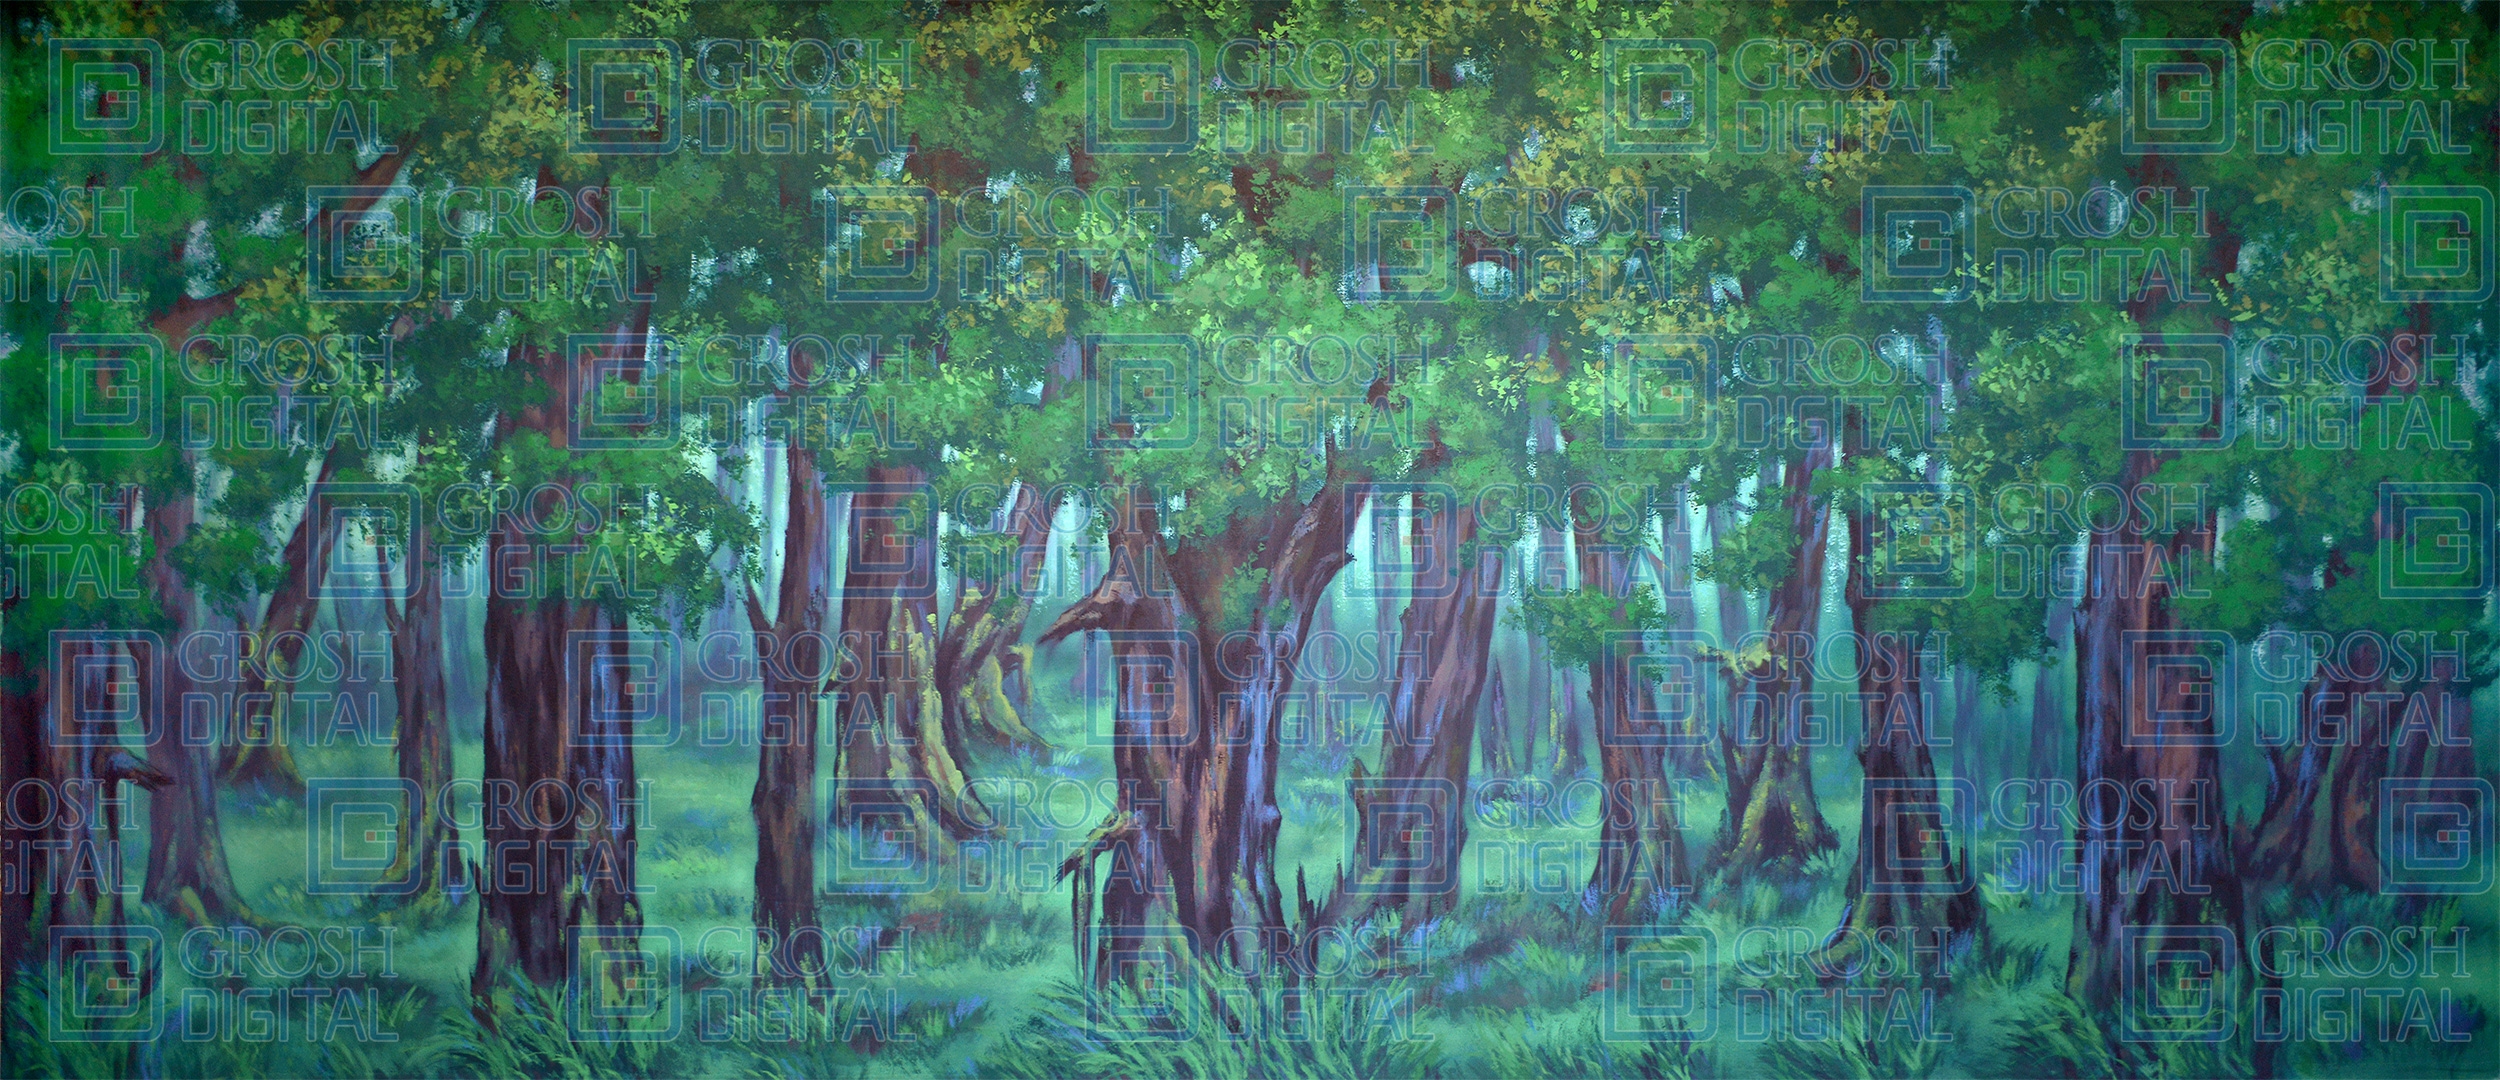 Dark Green Forest Projected Backdrop for Addams Family, Alice in Wonderland, Beauty and the Beast, Brigadoon, Cinderella, Forest, Giselle, Into the Woods, Lion King, Madagascar, Peter Pan, Shrek, Sleeping Beauty, Wizard of Oz